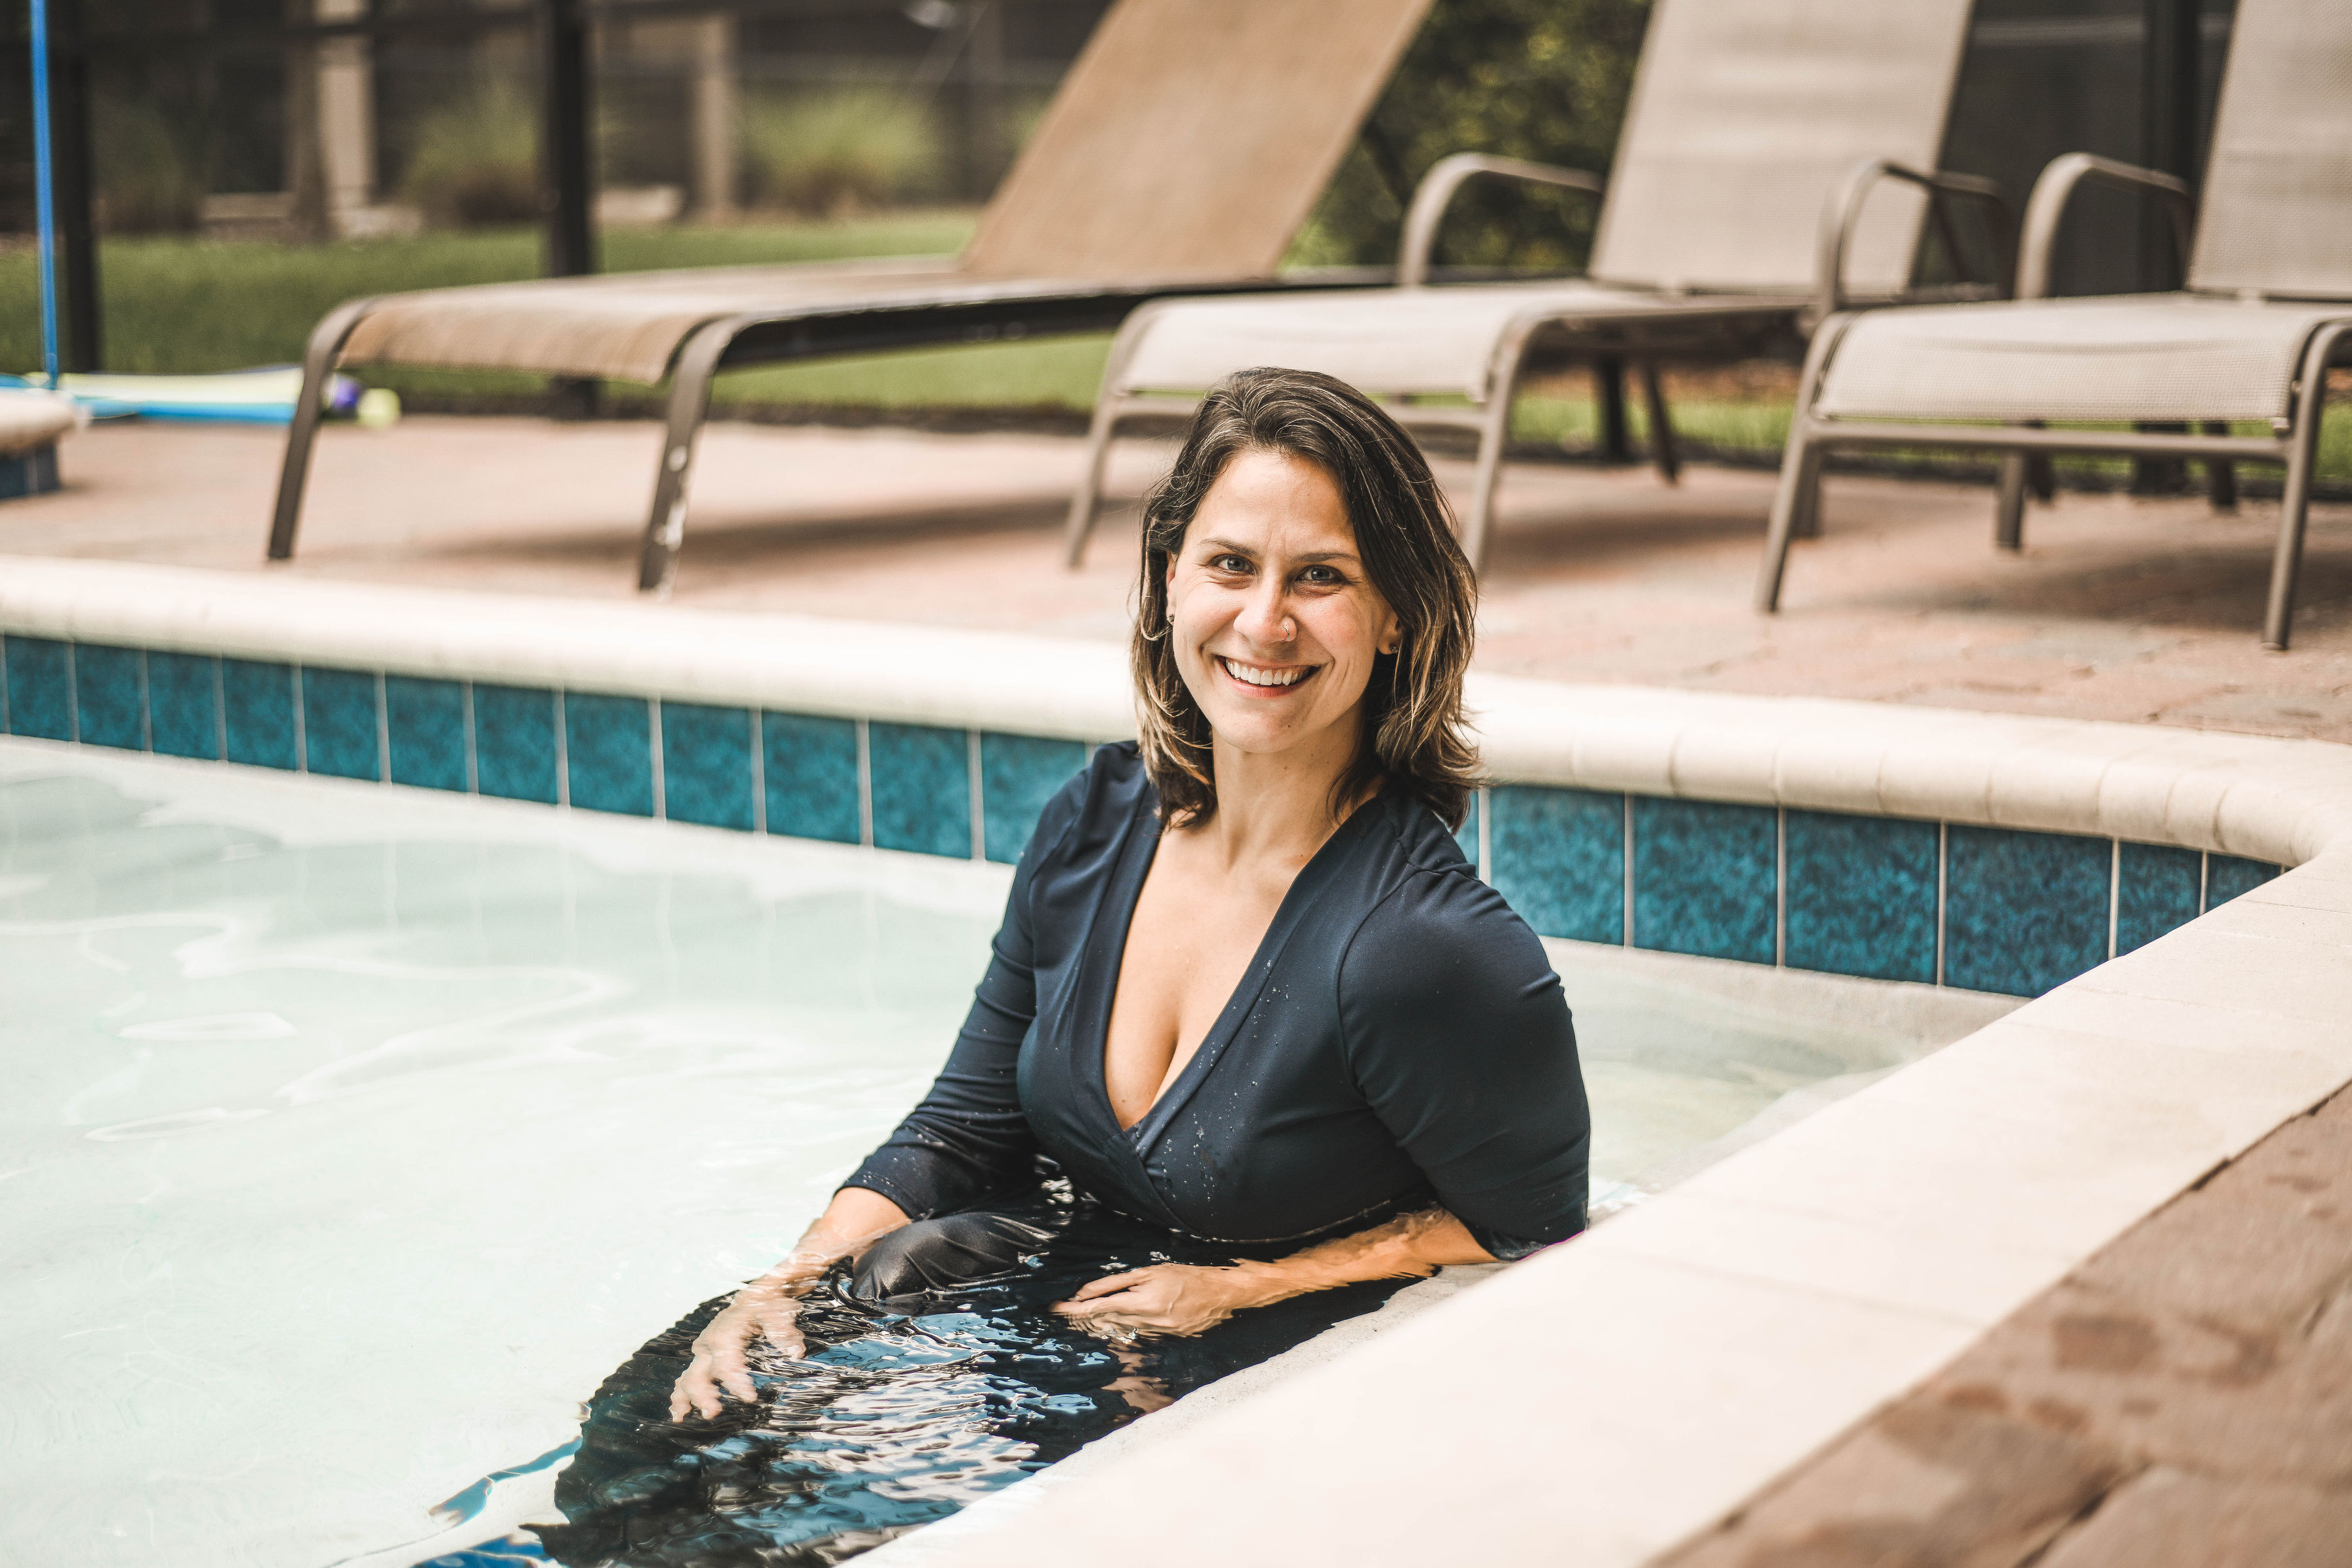 Jenny Dumont of southern hedge and the magical lady boss club, graphic designer for magical lady bosses and spiritual entrepreneurs who want to create more ease in their businesses through creative strategy and energetically aligned design.